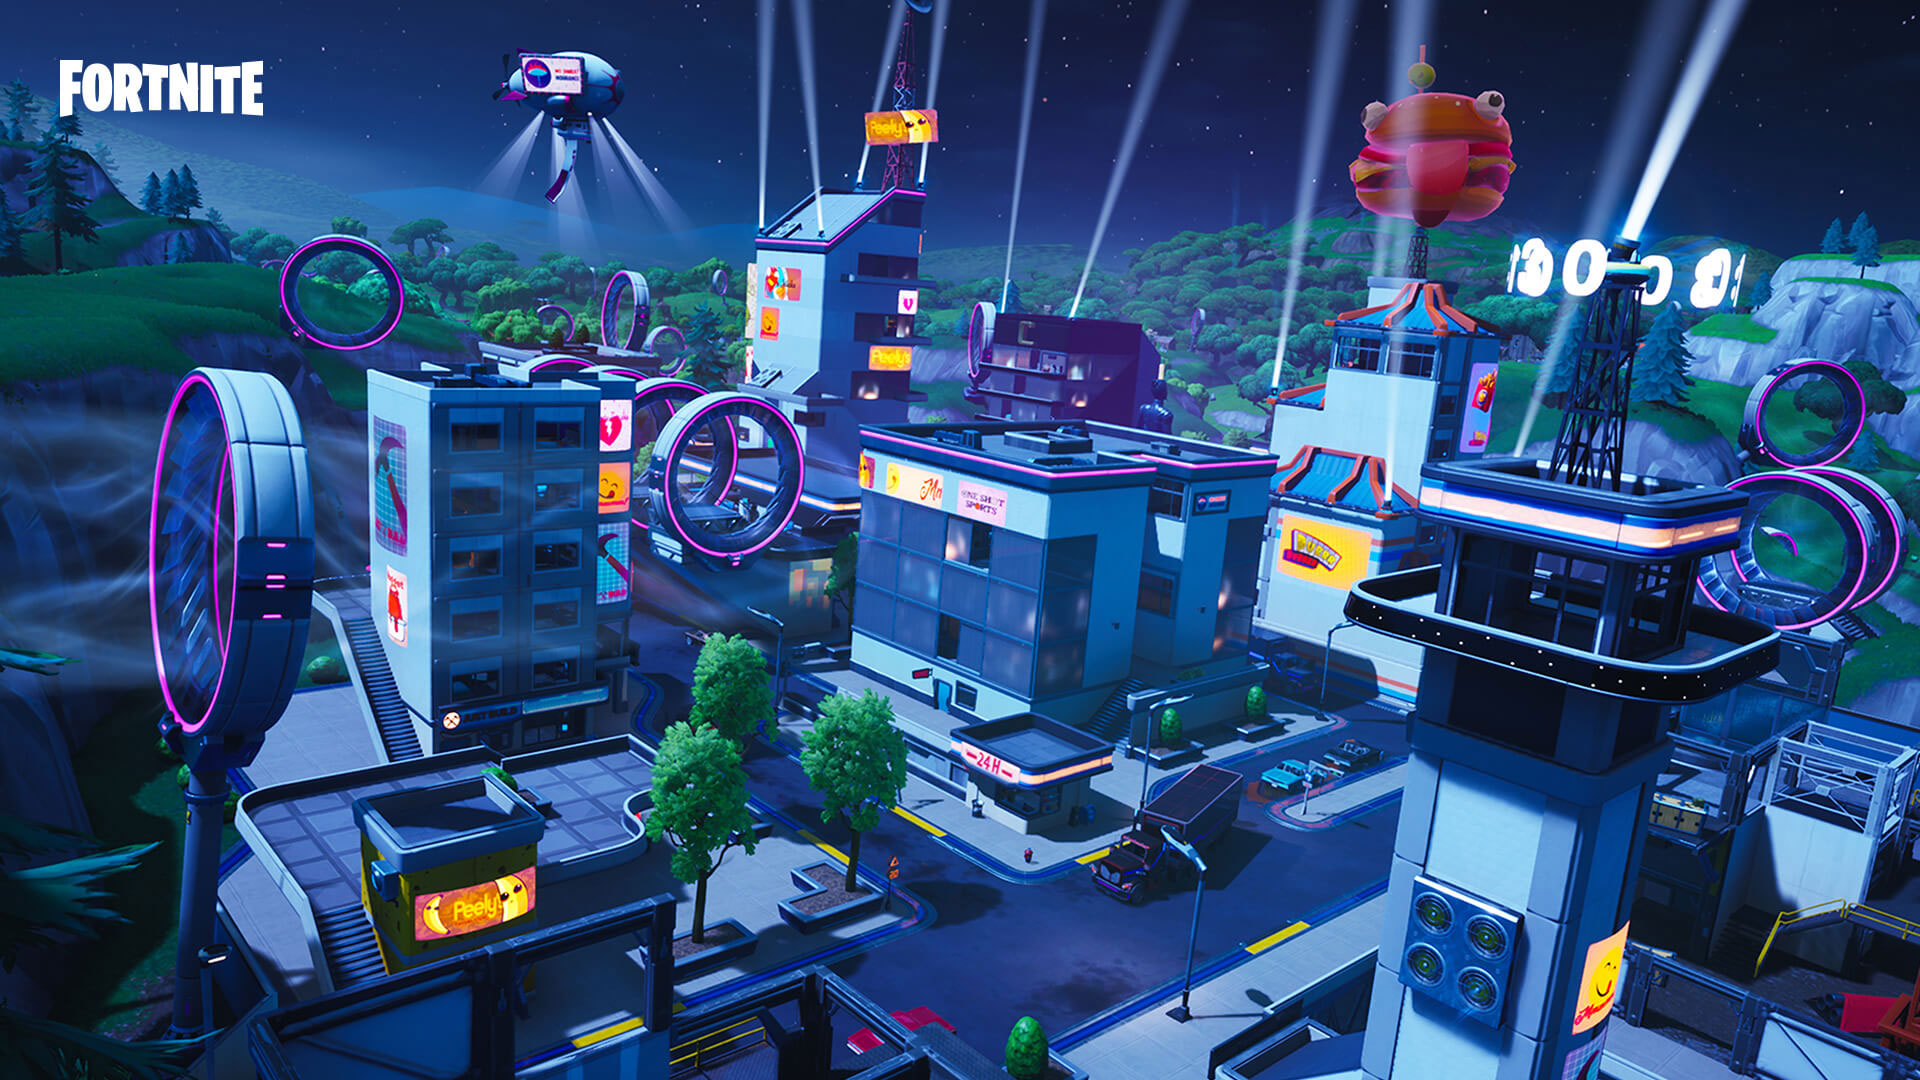 fortnite br season 9 patch notes reveal new collectible